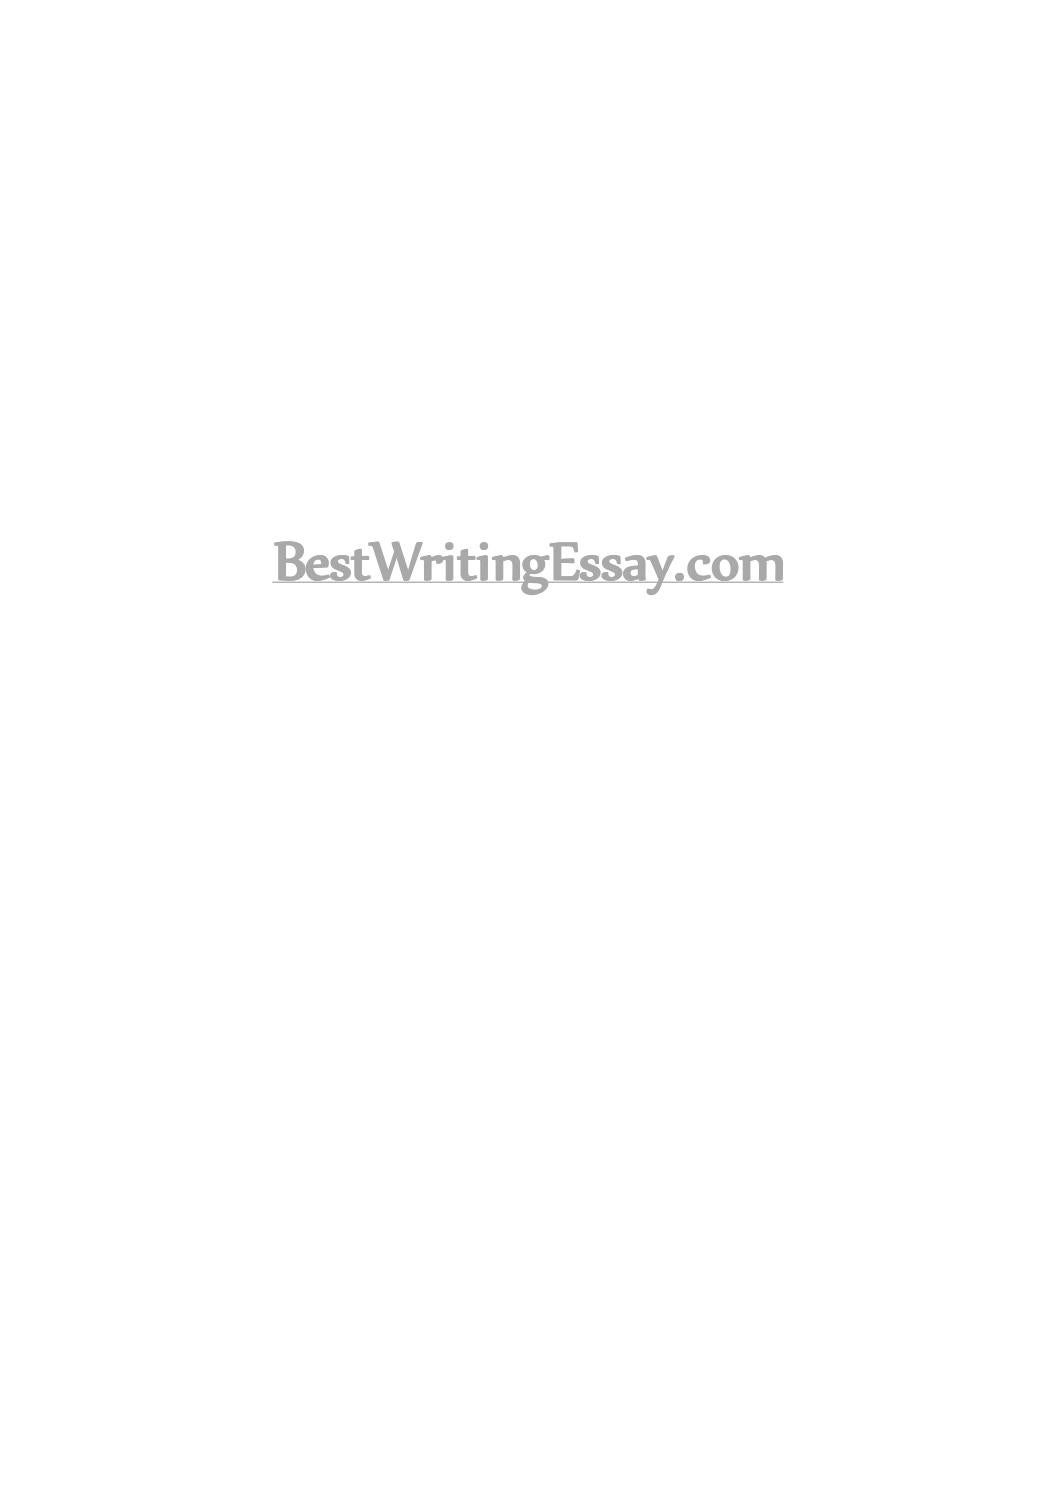 How To Write An Effective University Essay By Crystalezaix Issuu Mcbroom, a former college basketball player, took to twitter after carrigan posted a youtube video of unverified accusations involving mcbroom taking advantage of carrigan's. issuu